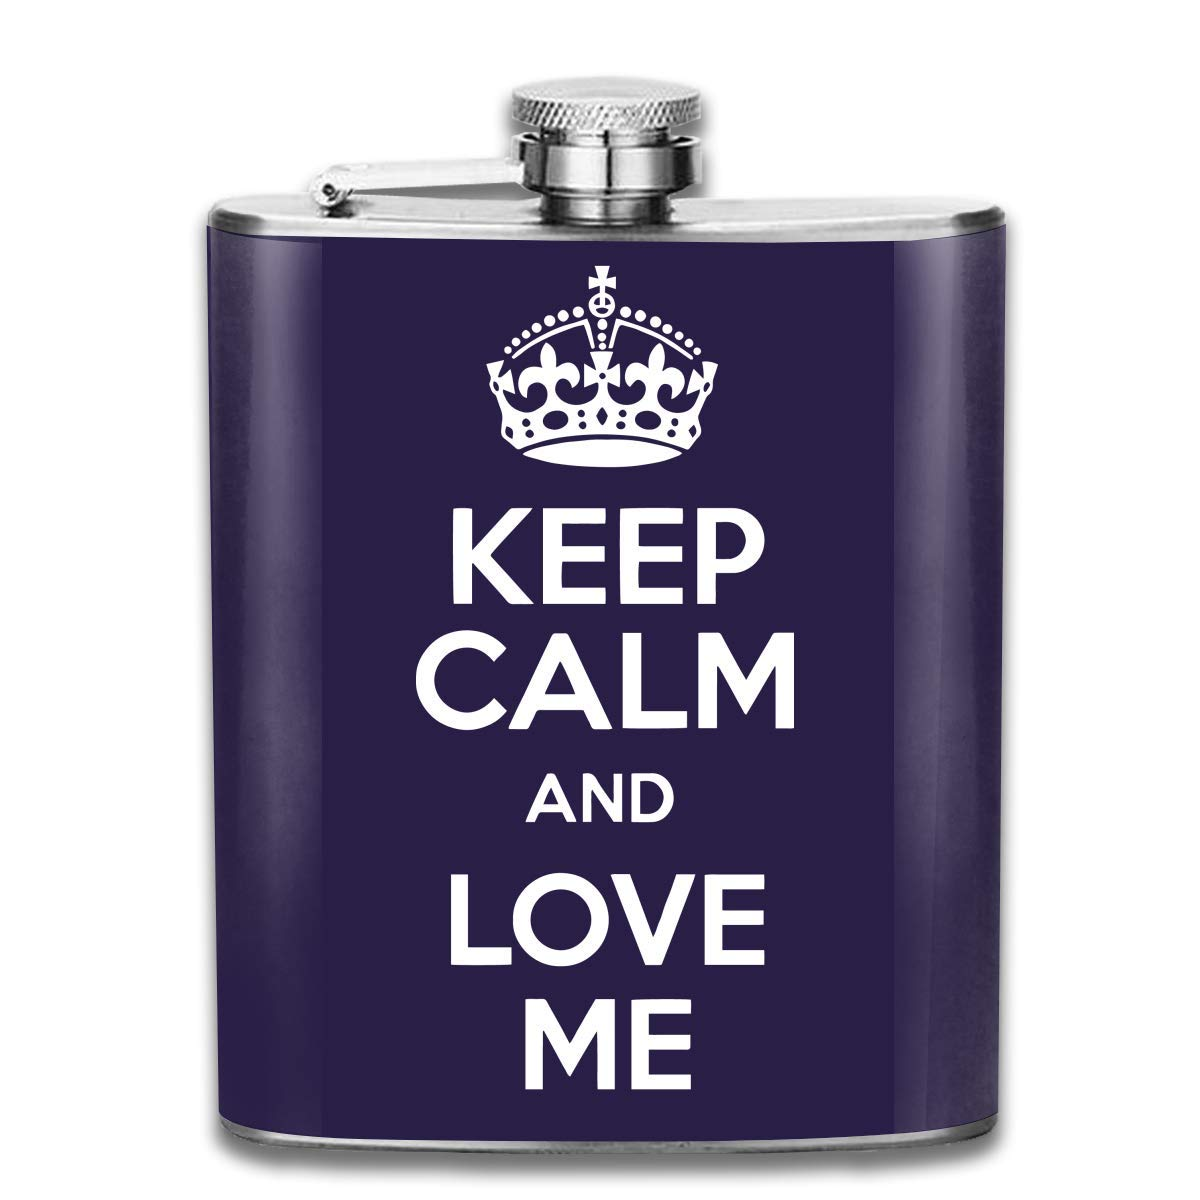 deyhfef Men and Women Thick Stainless Steel Hip Flask 7 OZ Keep Calm and Love Me Pocket Container for Drinking Liquor Vodka